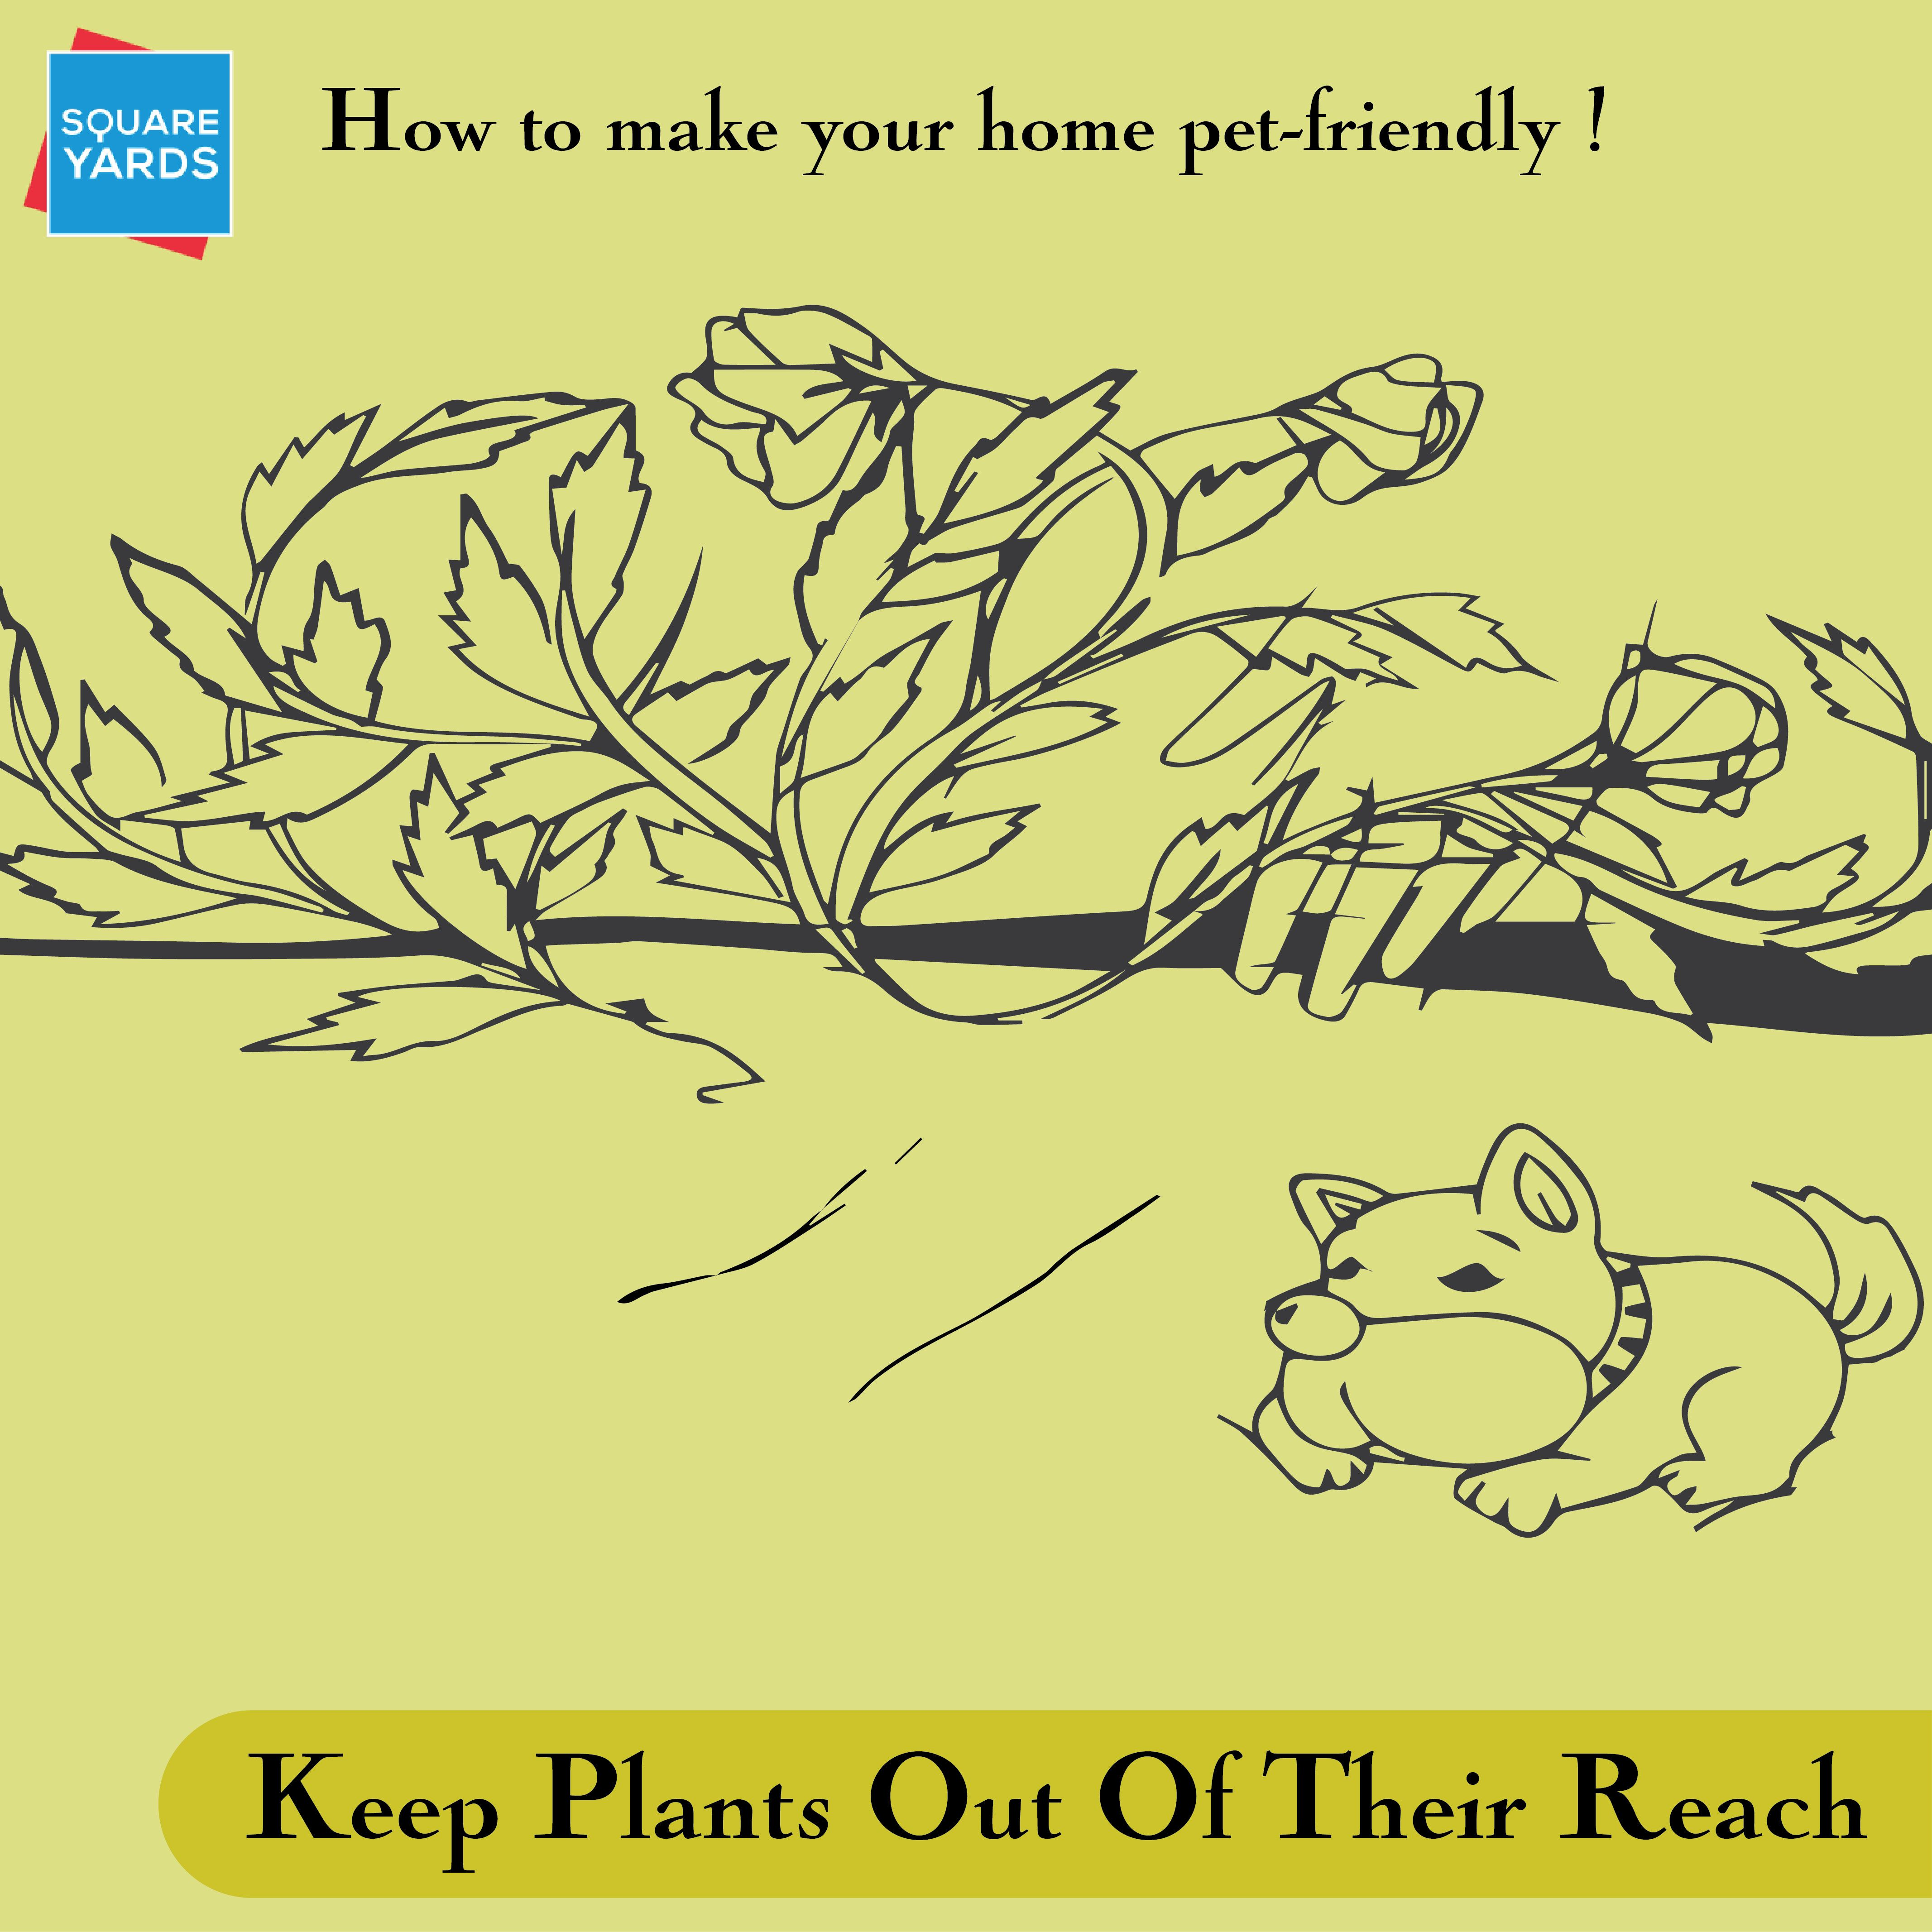 Most Common Household Plants Are Poisonous To Dogs Hence, Keep